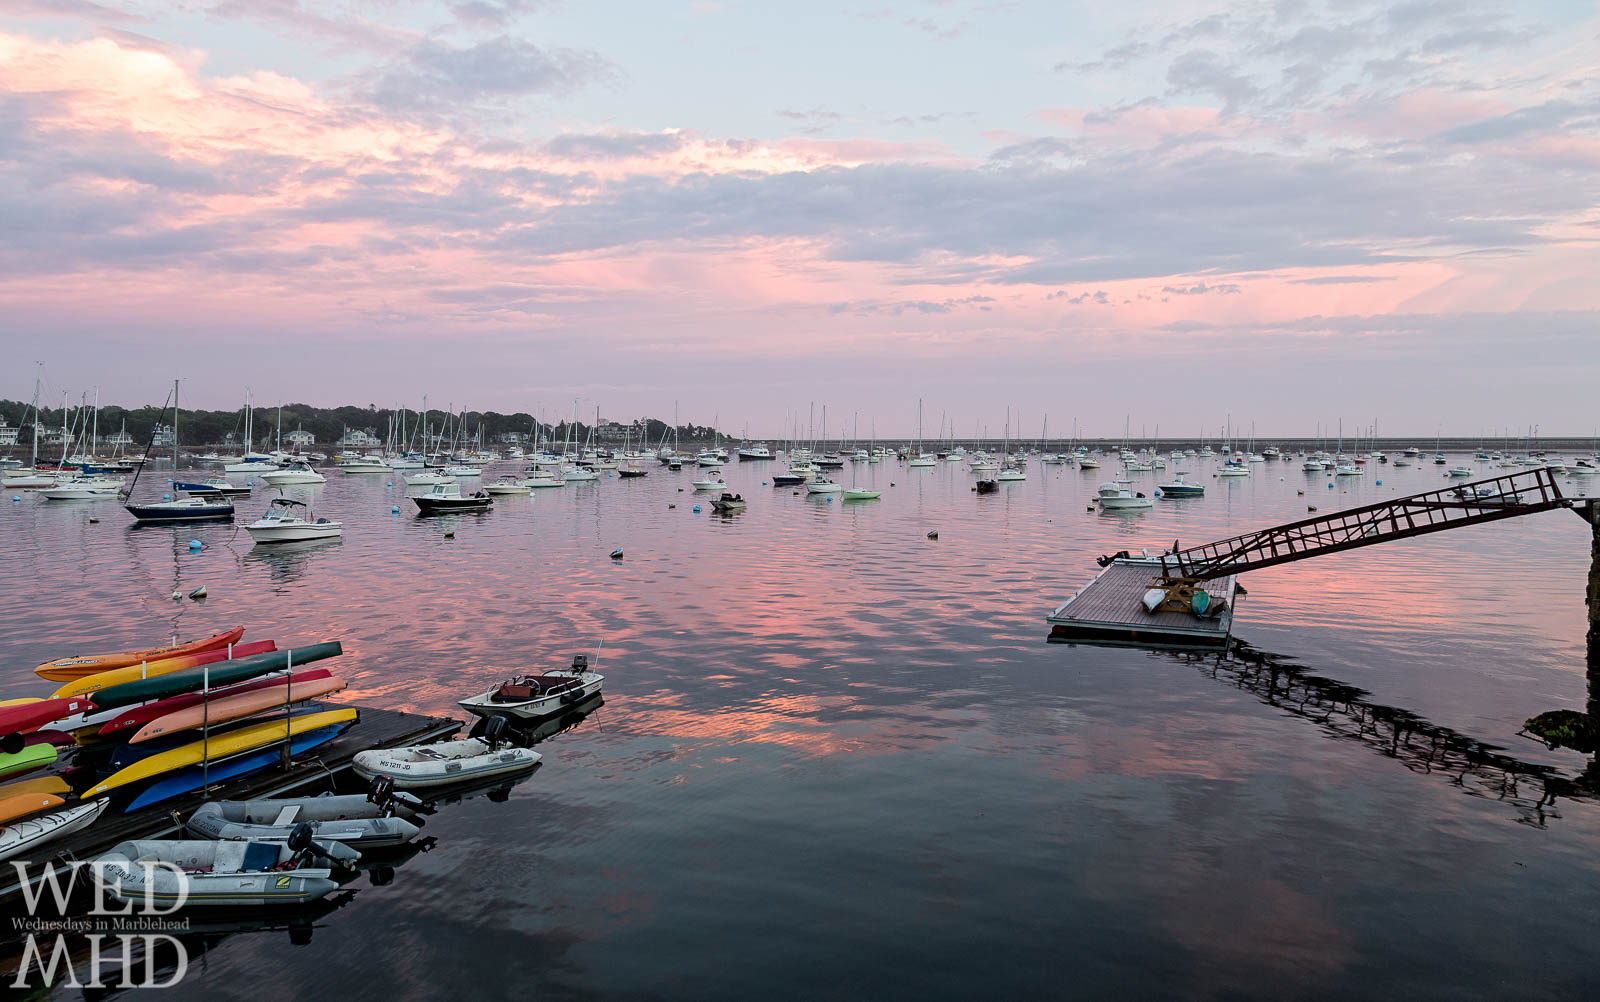 Kayaks add color to this pink sunset over Marblehead Harbor captured on a late Spring day